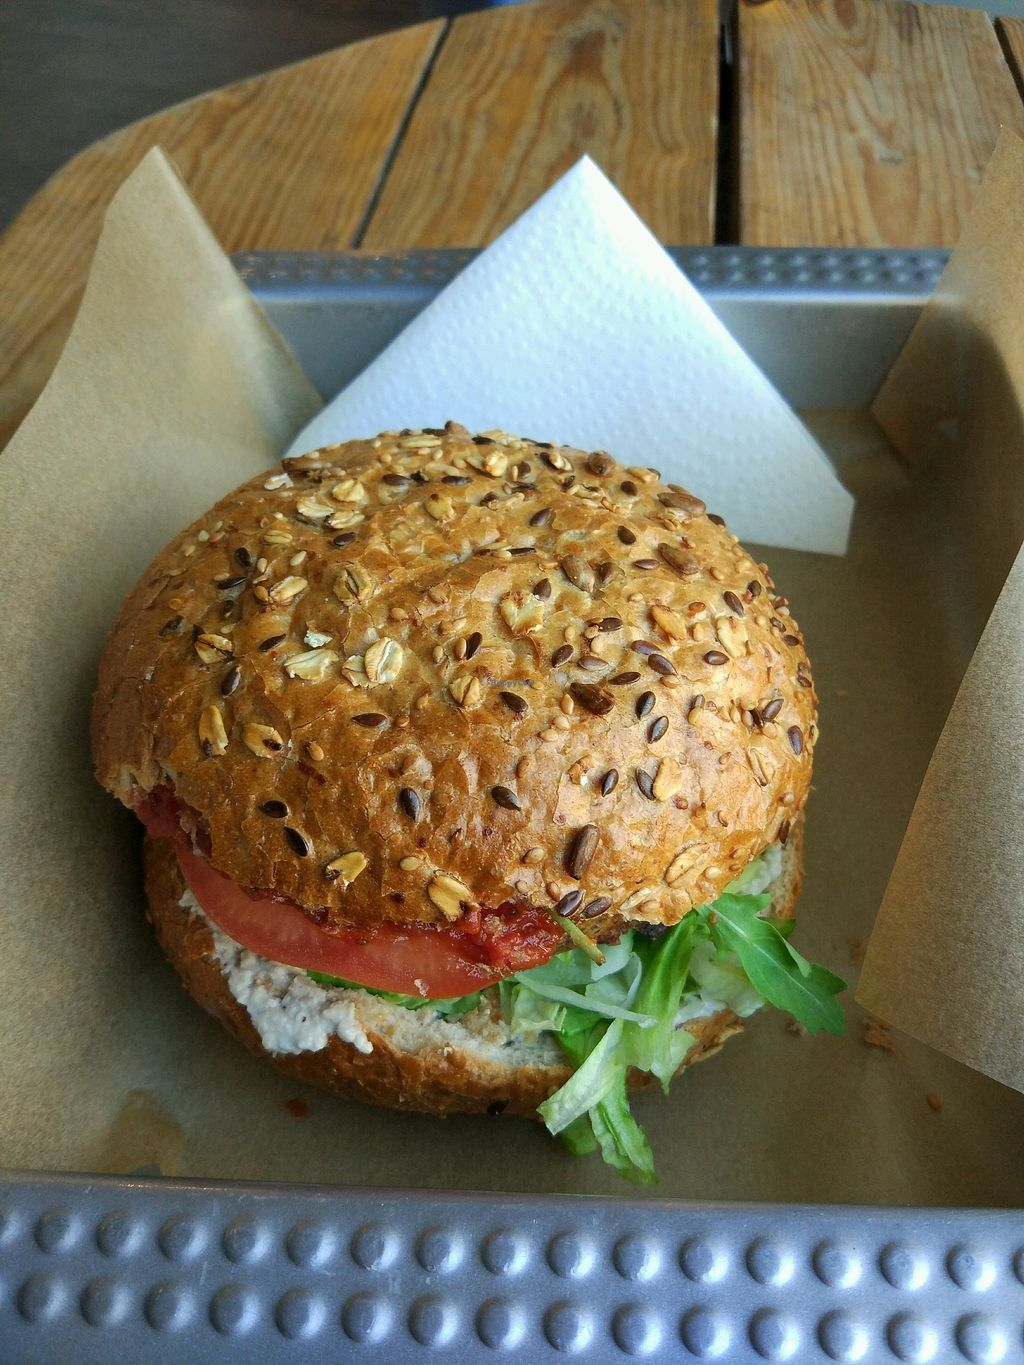 """Photo of Chwast Food  by <a href=""""/members/profile/SoniaR"""">SoniaR</a> <br/>cieciorka burger <br/> April 13, 2018  - <a href='/contact/abuse/image/52782/385244'>Report</a>"""